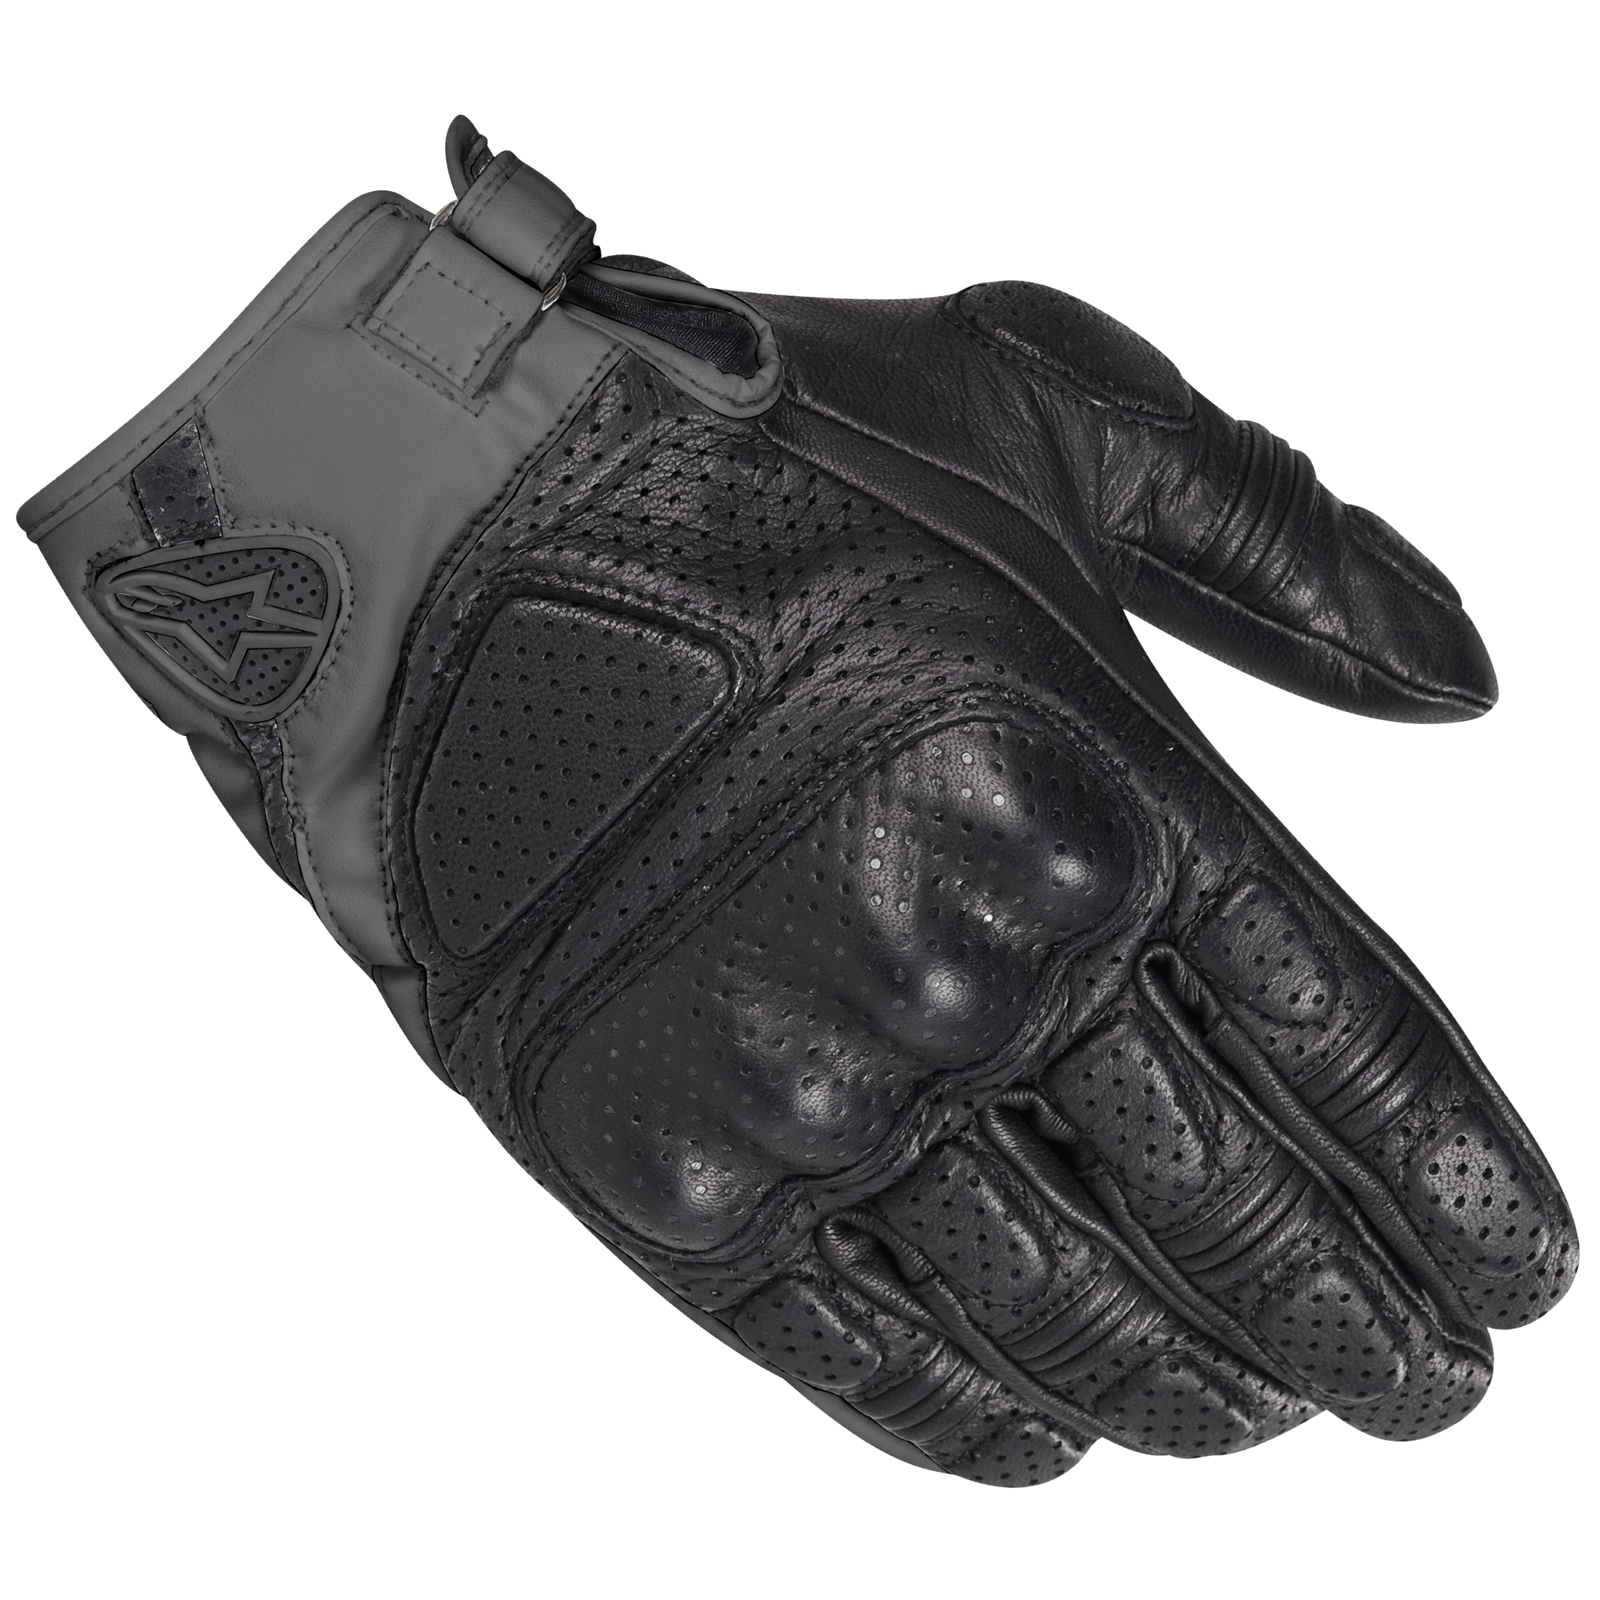 Motorcycle gloves for summer - Thumbnail 1 Thumbnail 2 Thumbnail 3 Thumbnail 4